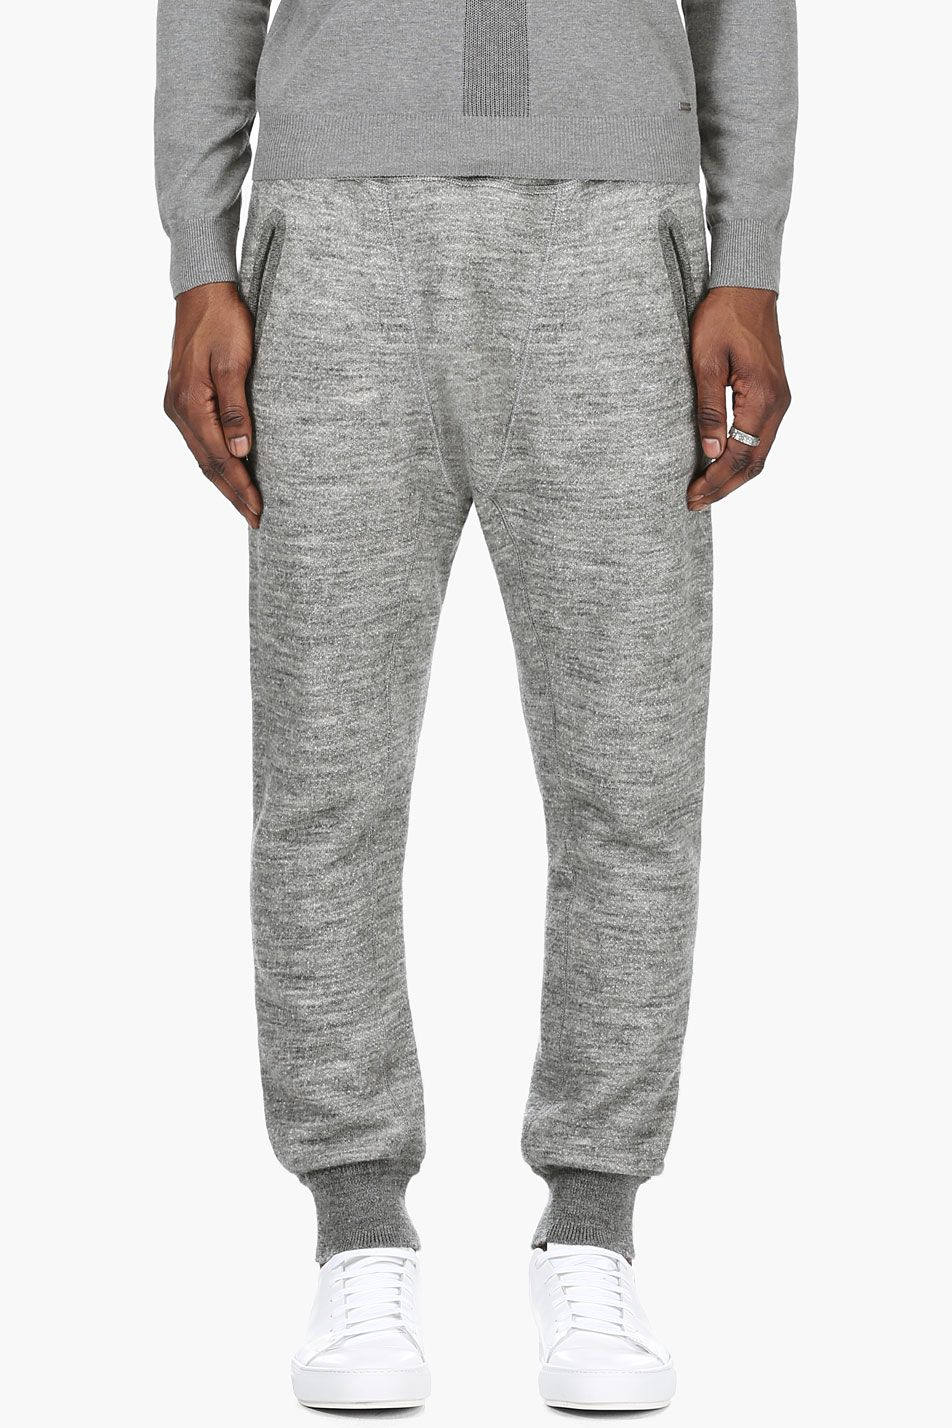 6fc3a3763f89b DSQUARED2 Grey Drop Crotch Lounge Pants | trousers | Pants, Drop ...